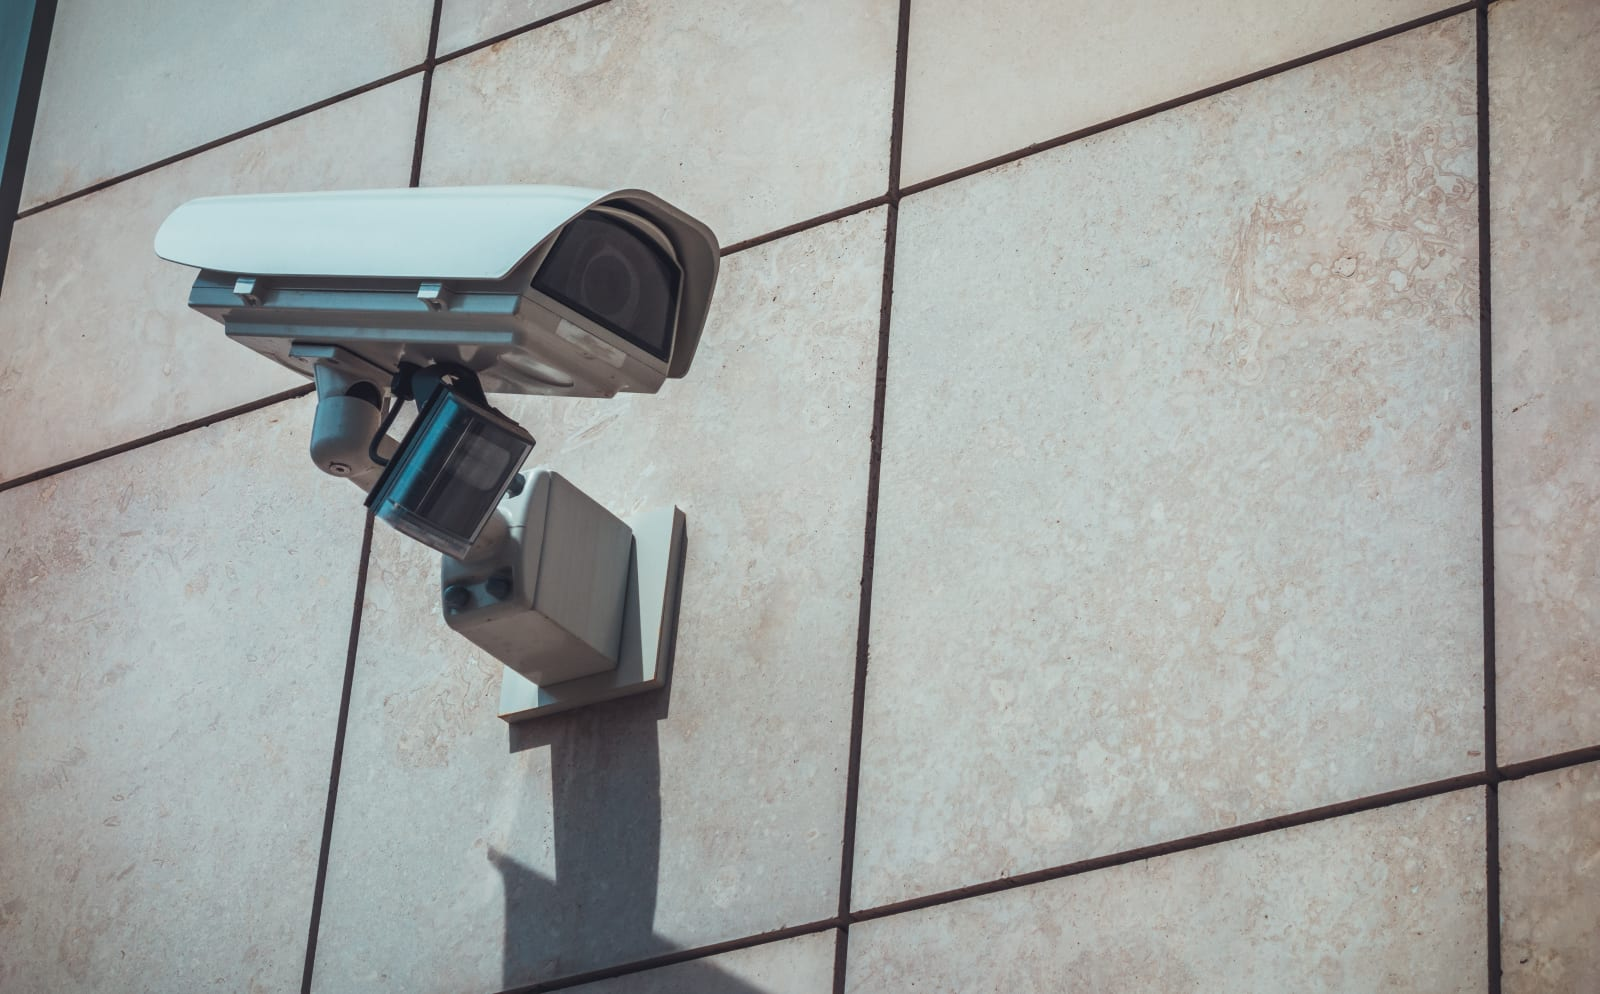 Orlando won't use Amazon's facial recognition software anymore